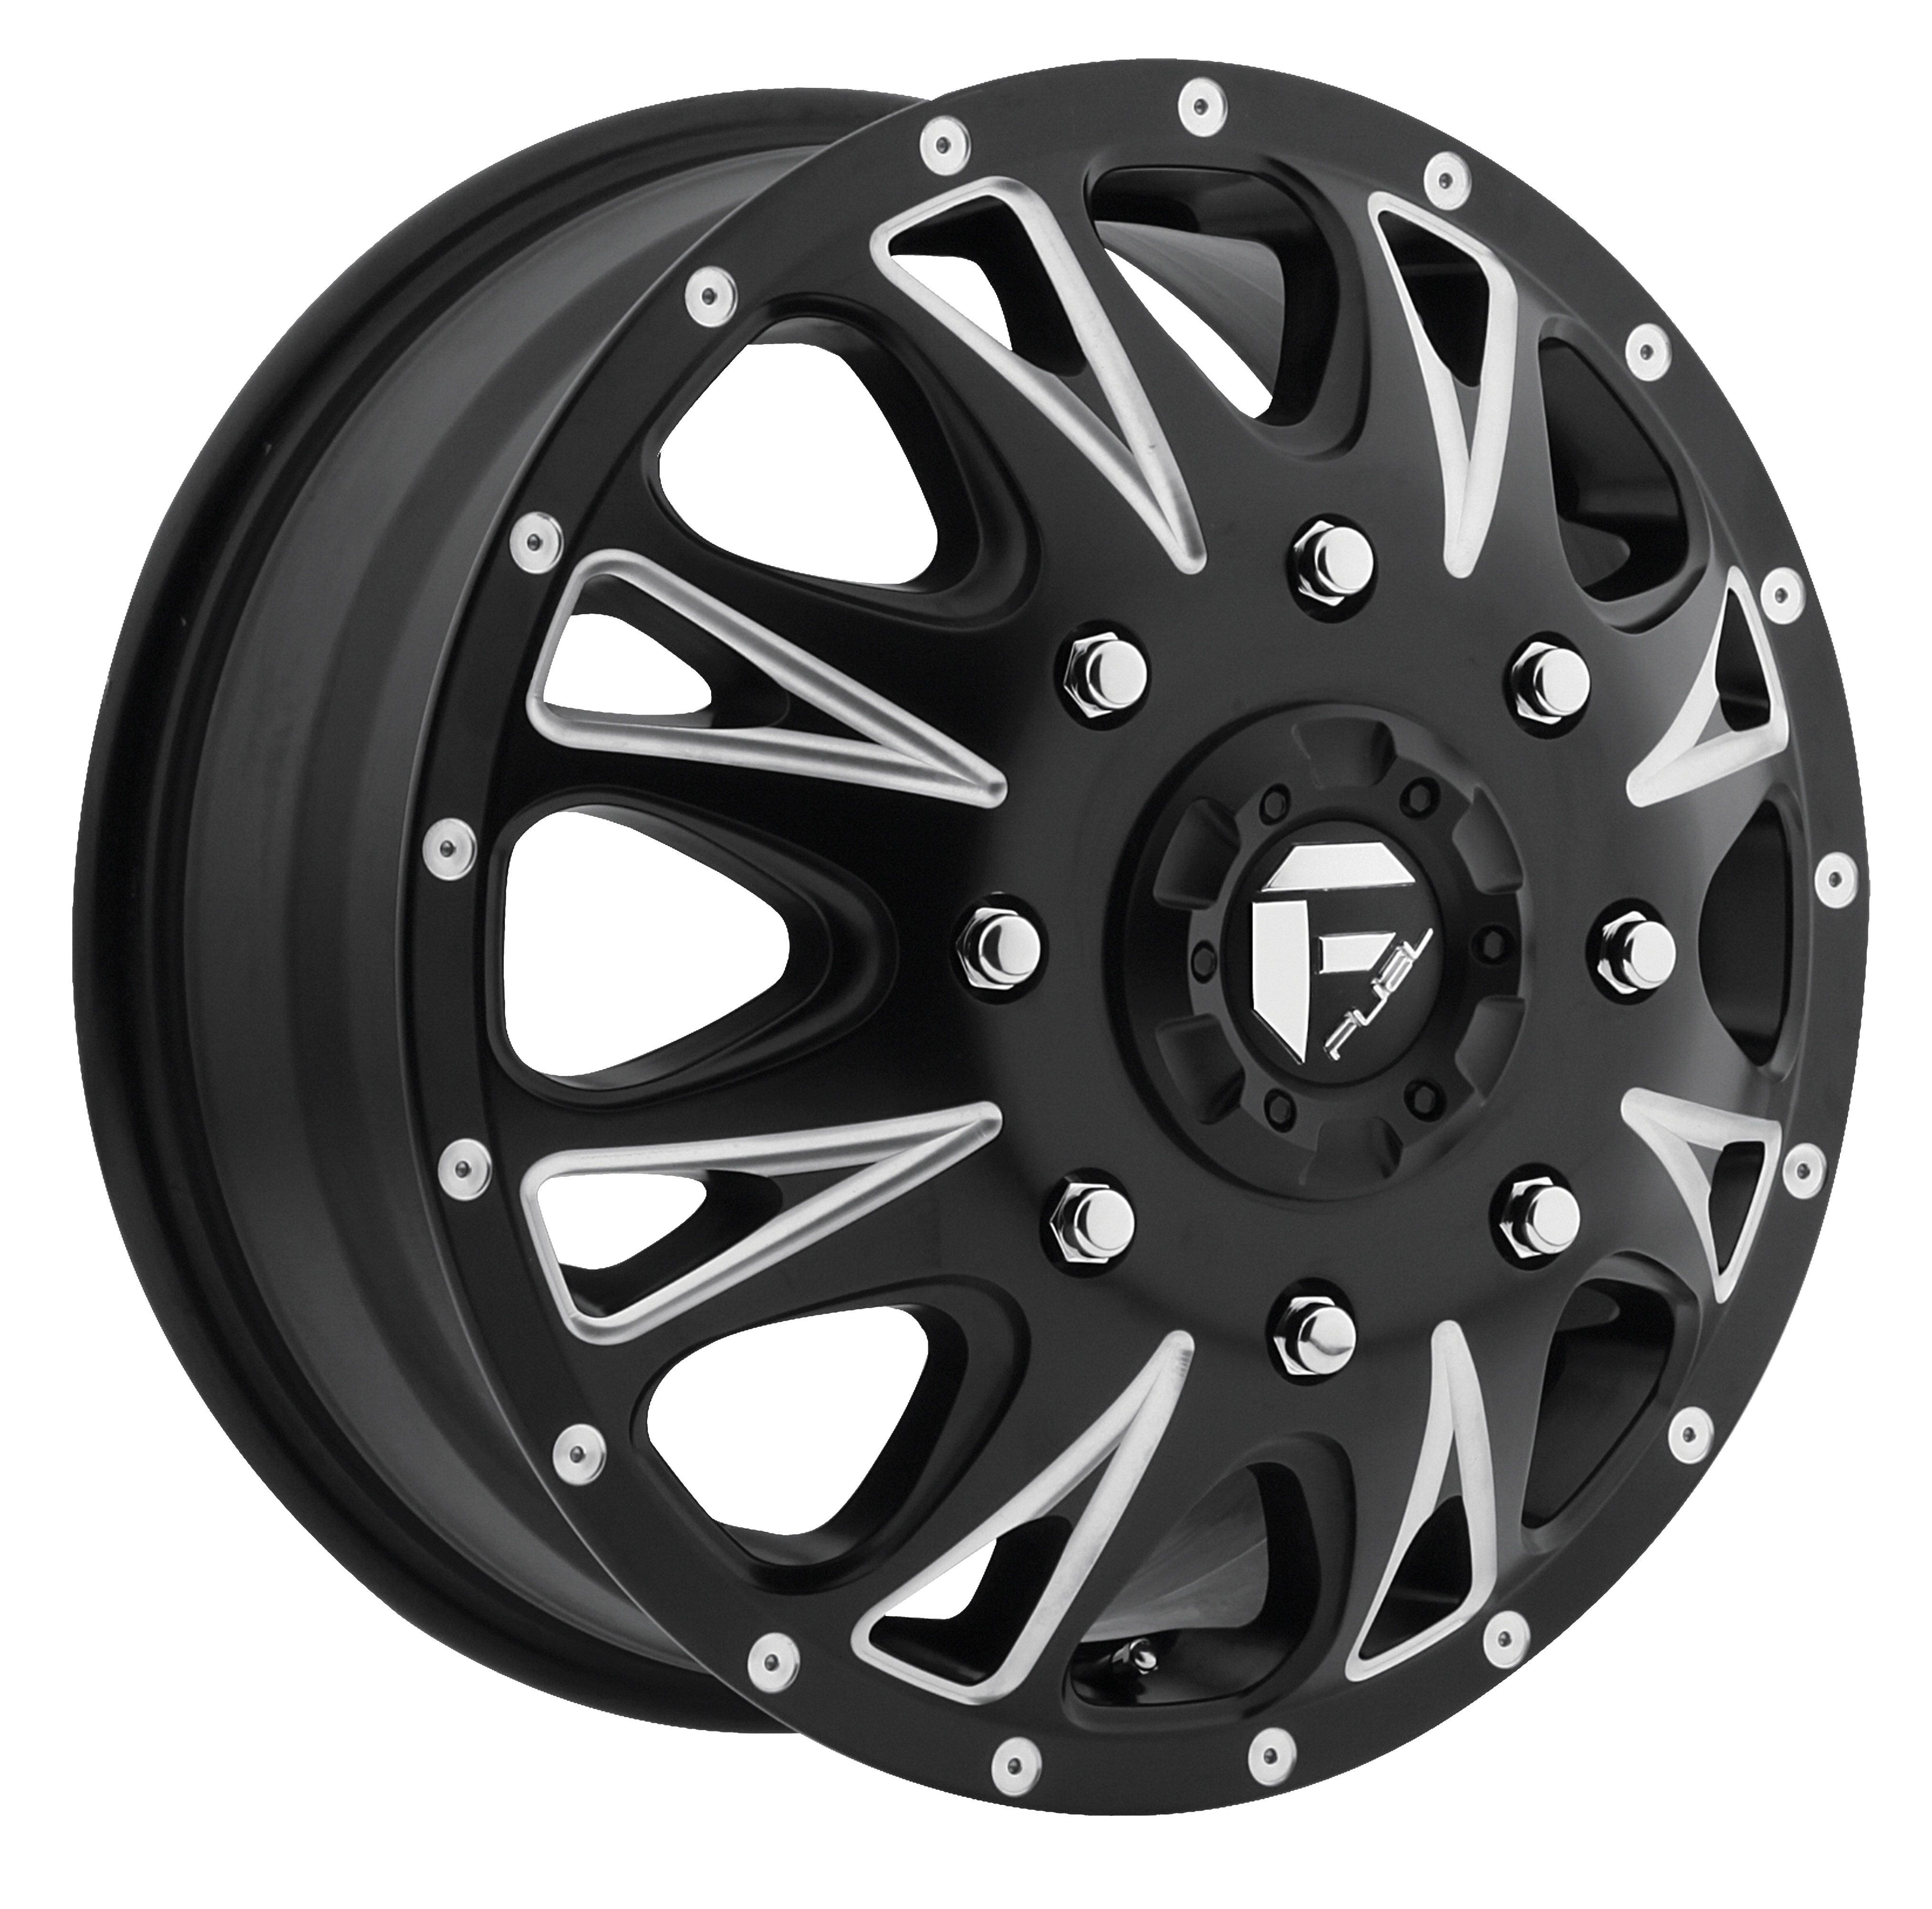 17x6.5 Fuel Offroad Wheels Fuel Offroad D513 Throttle Black and Milled